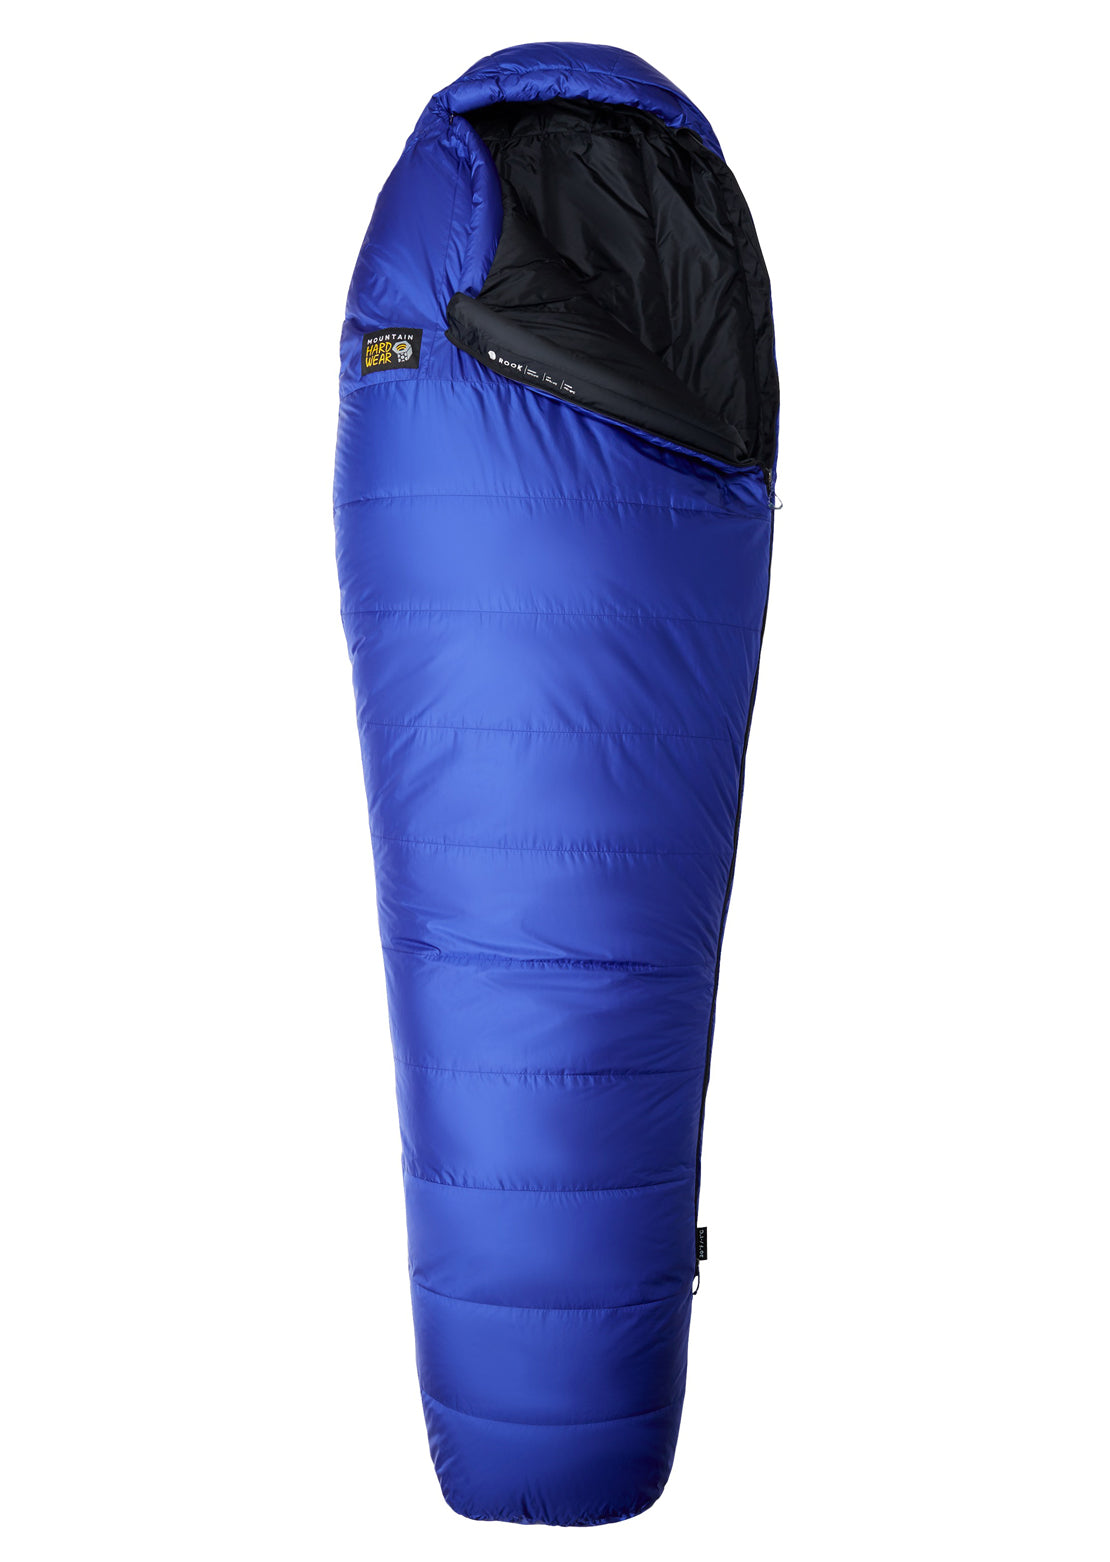 Mountain Hardwear Men's Rook 30F/-1C Long Sleeping Bag Clematis Blue